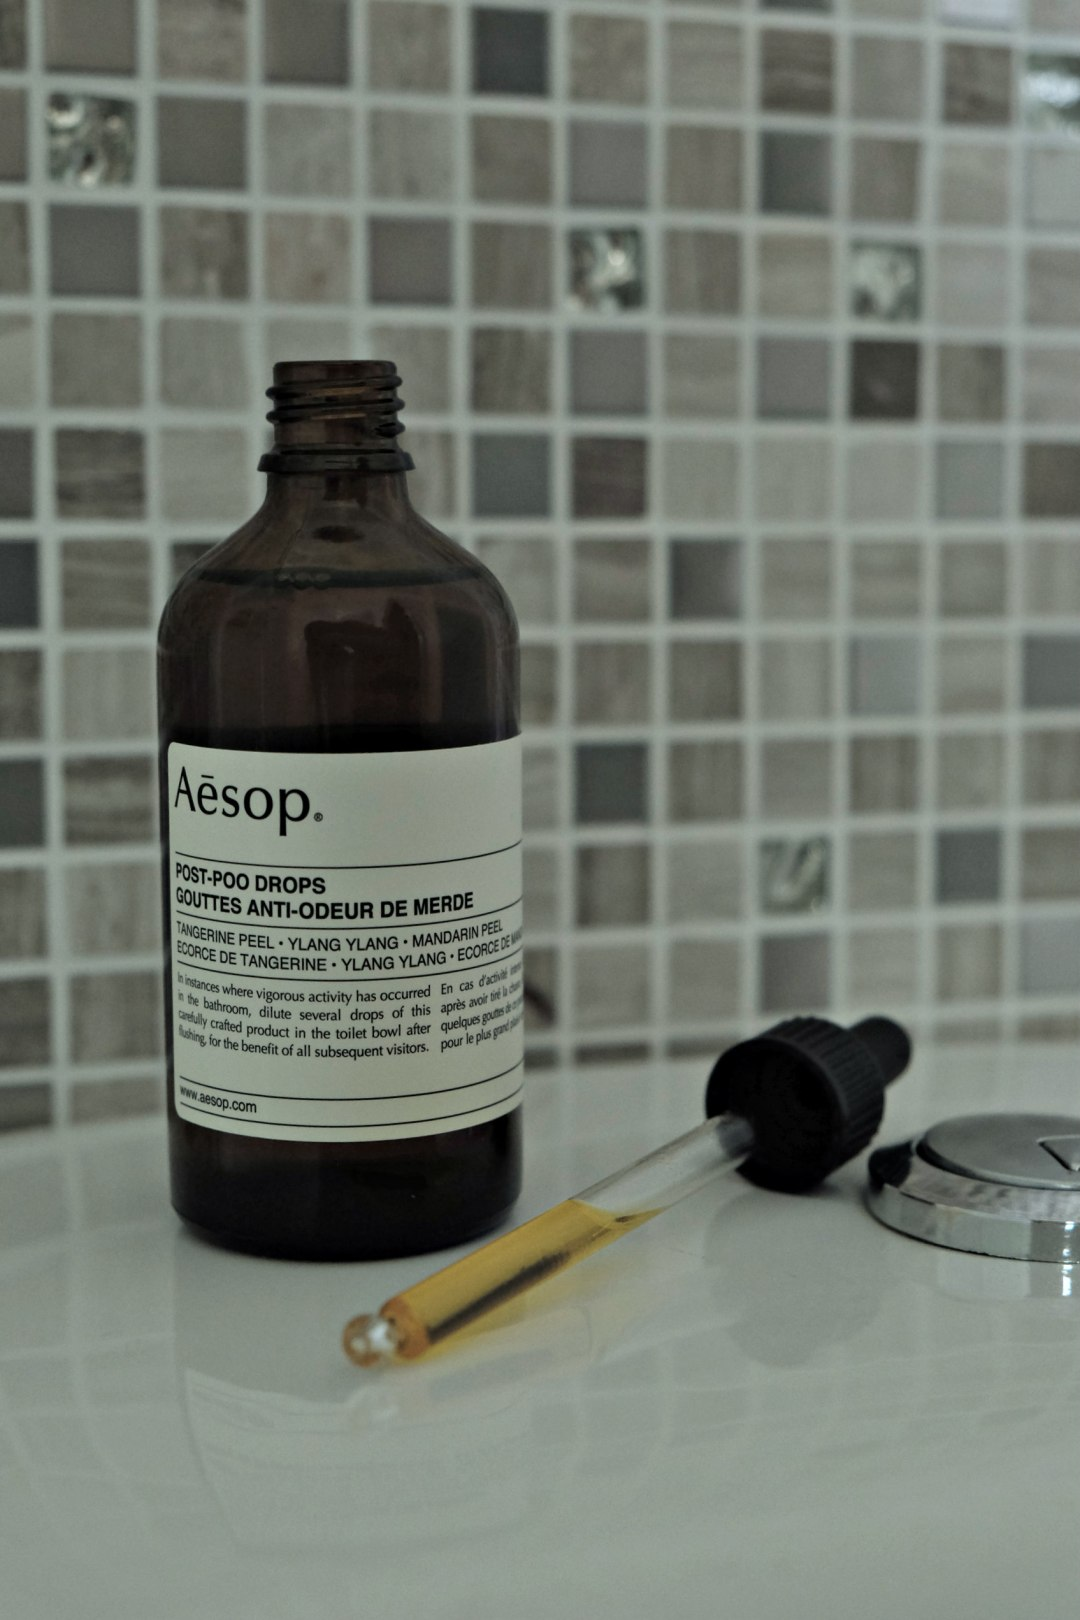 Picture of bottle of Aesop post poo drops open with dropper next to it.  You can see the liquid in the dropper.